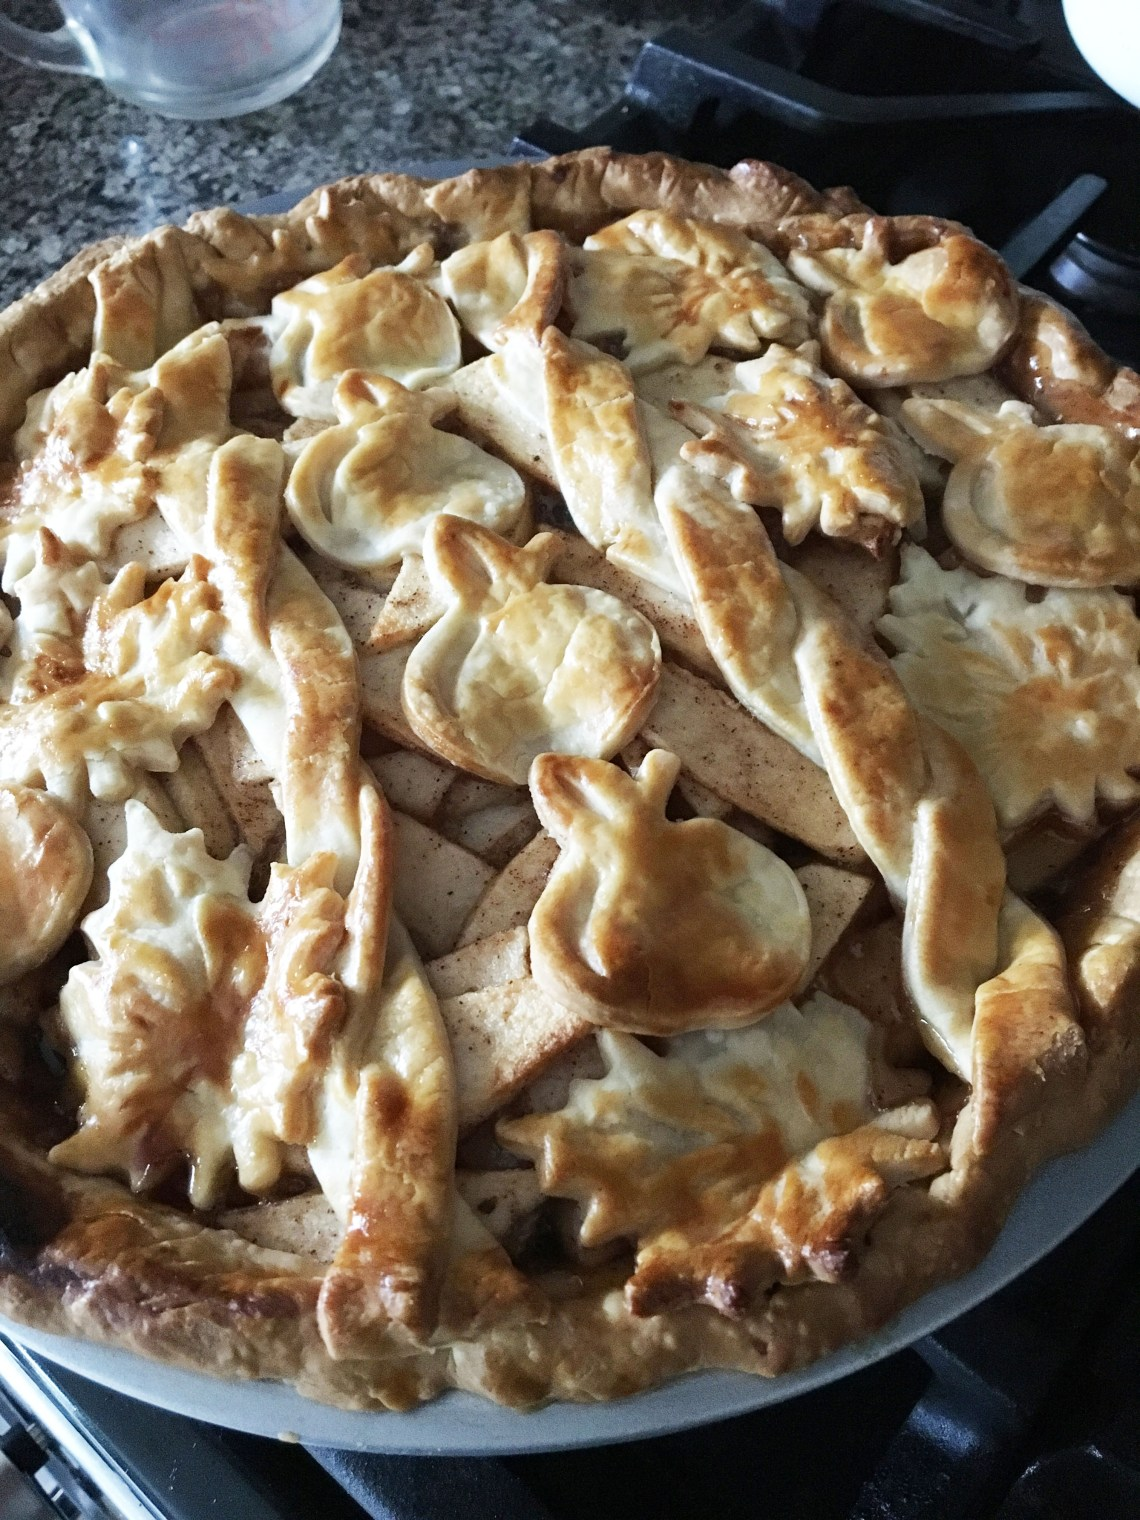 Apple Pie - Cutouts & Braided Lattice